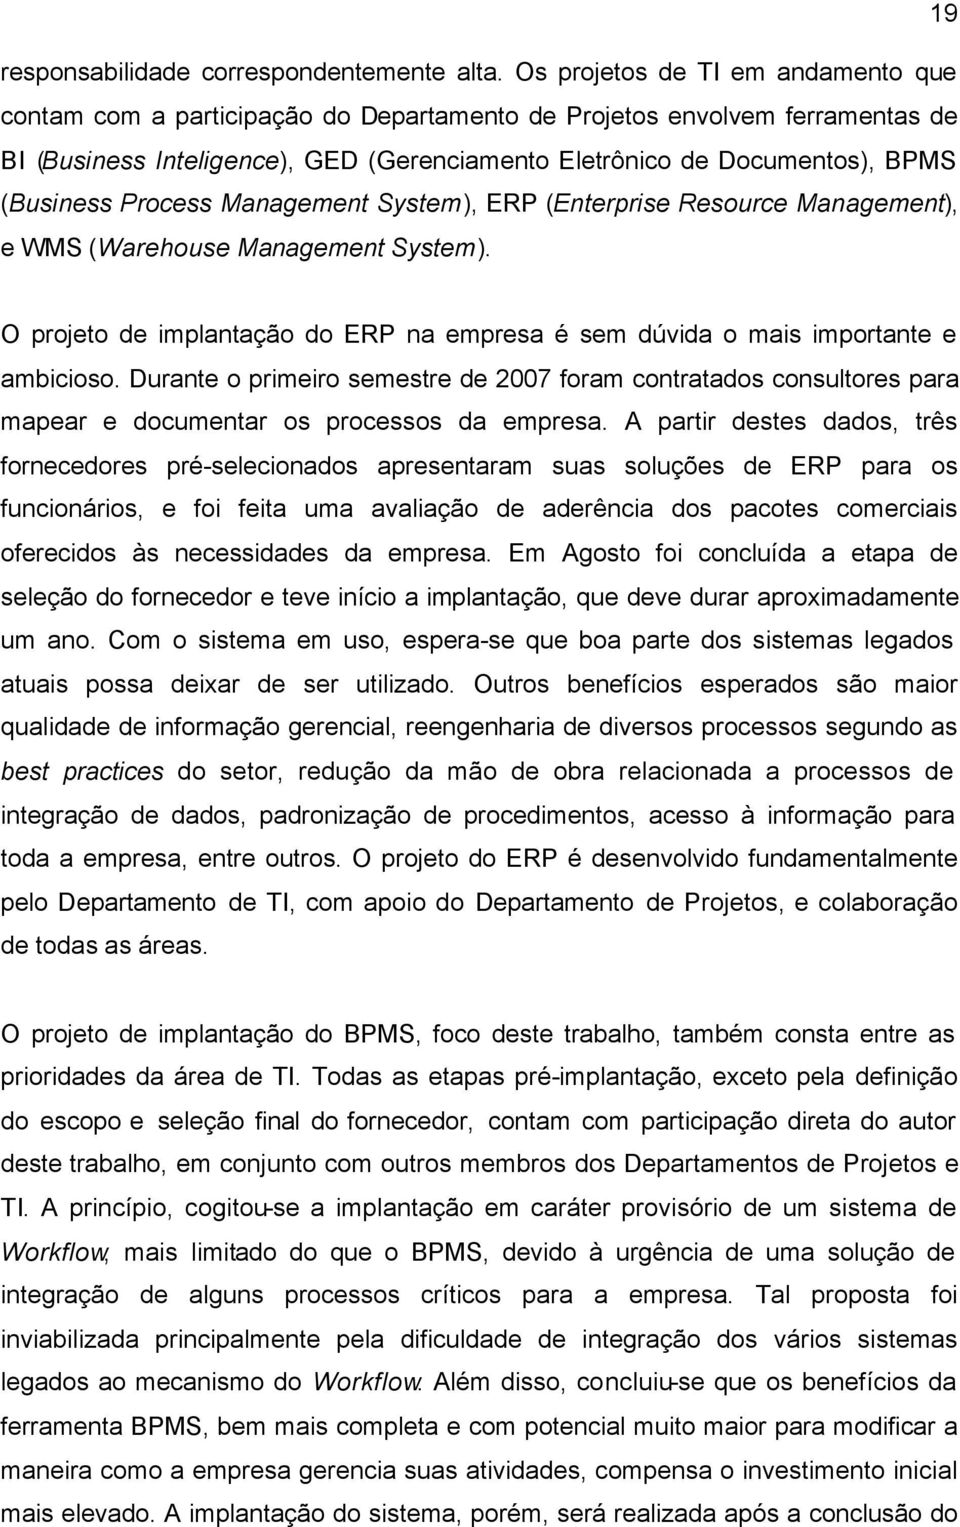 (Business Process Management System), ERP (Enterprise Resource Management), e WMS (Warehouse Management System). O projeto de implantação do ERP na empresa é sem dúvida o mais importante e ambicioso.